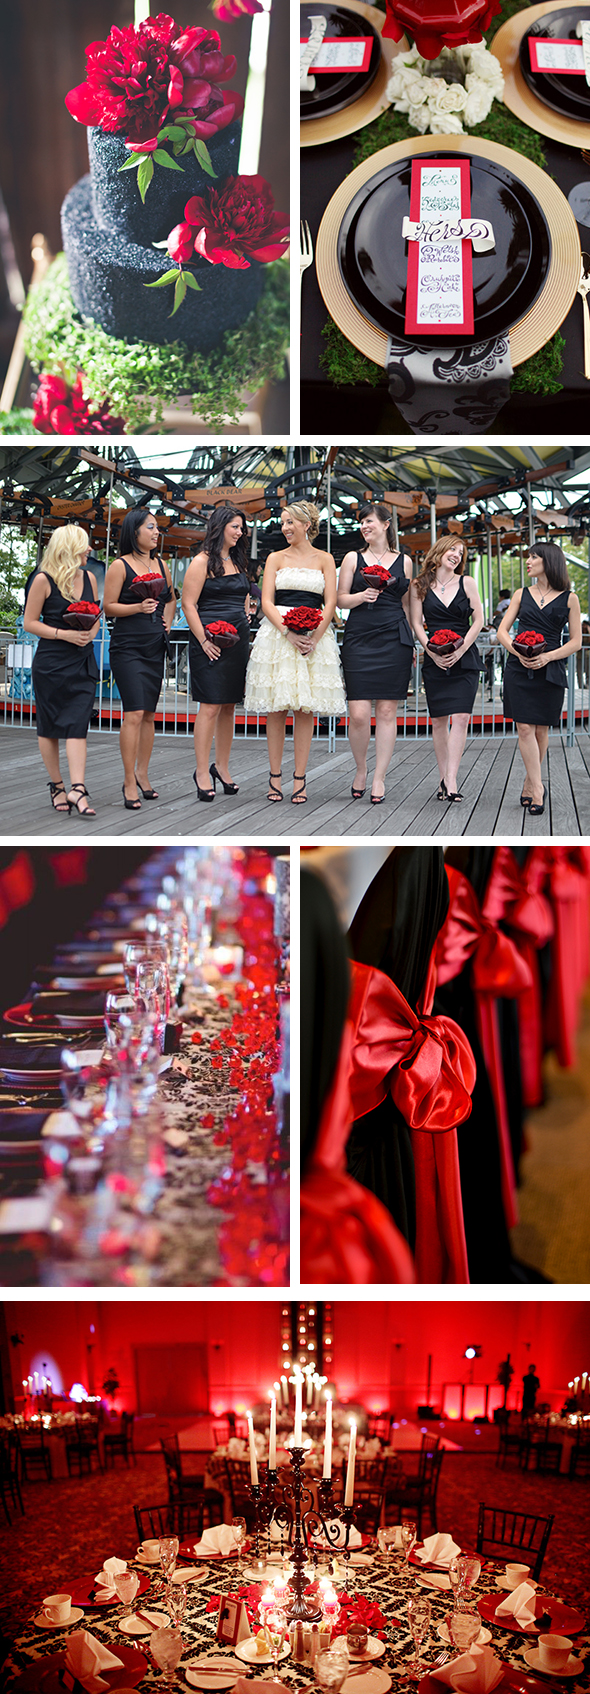 Black and red wedding Color Palette Inspiration:Red & Black